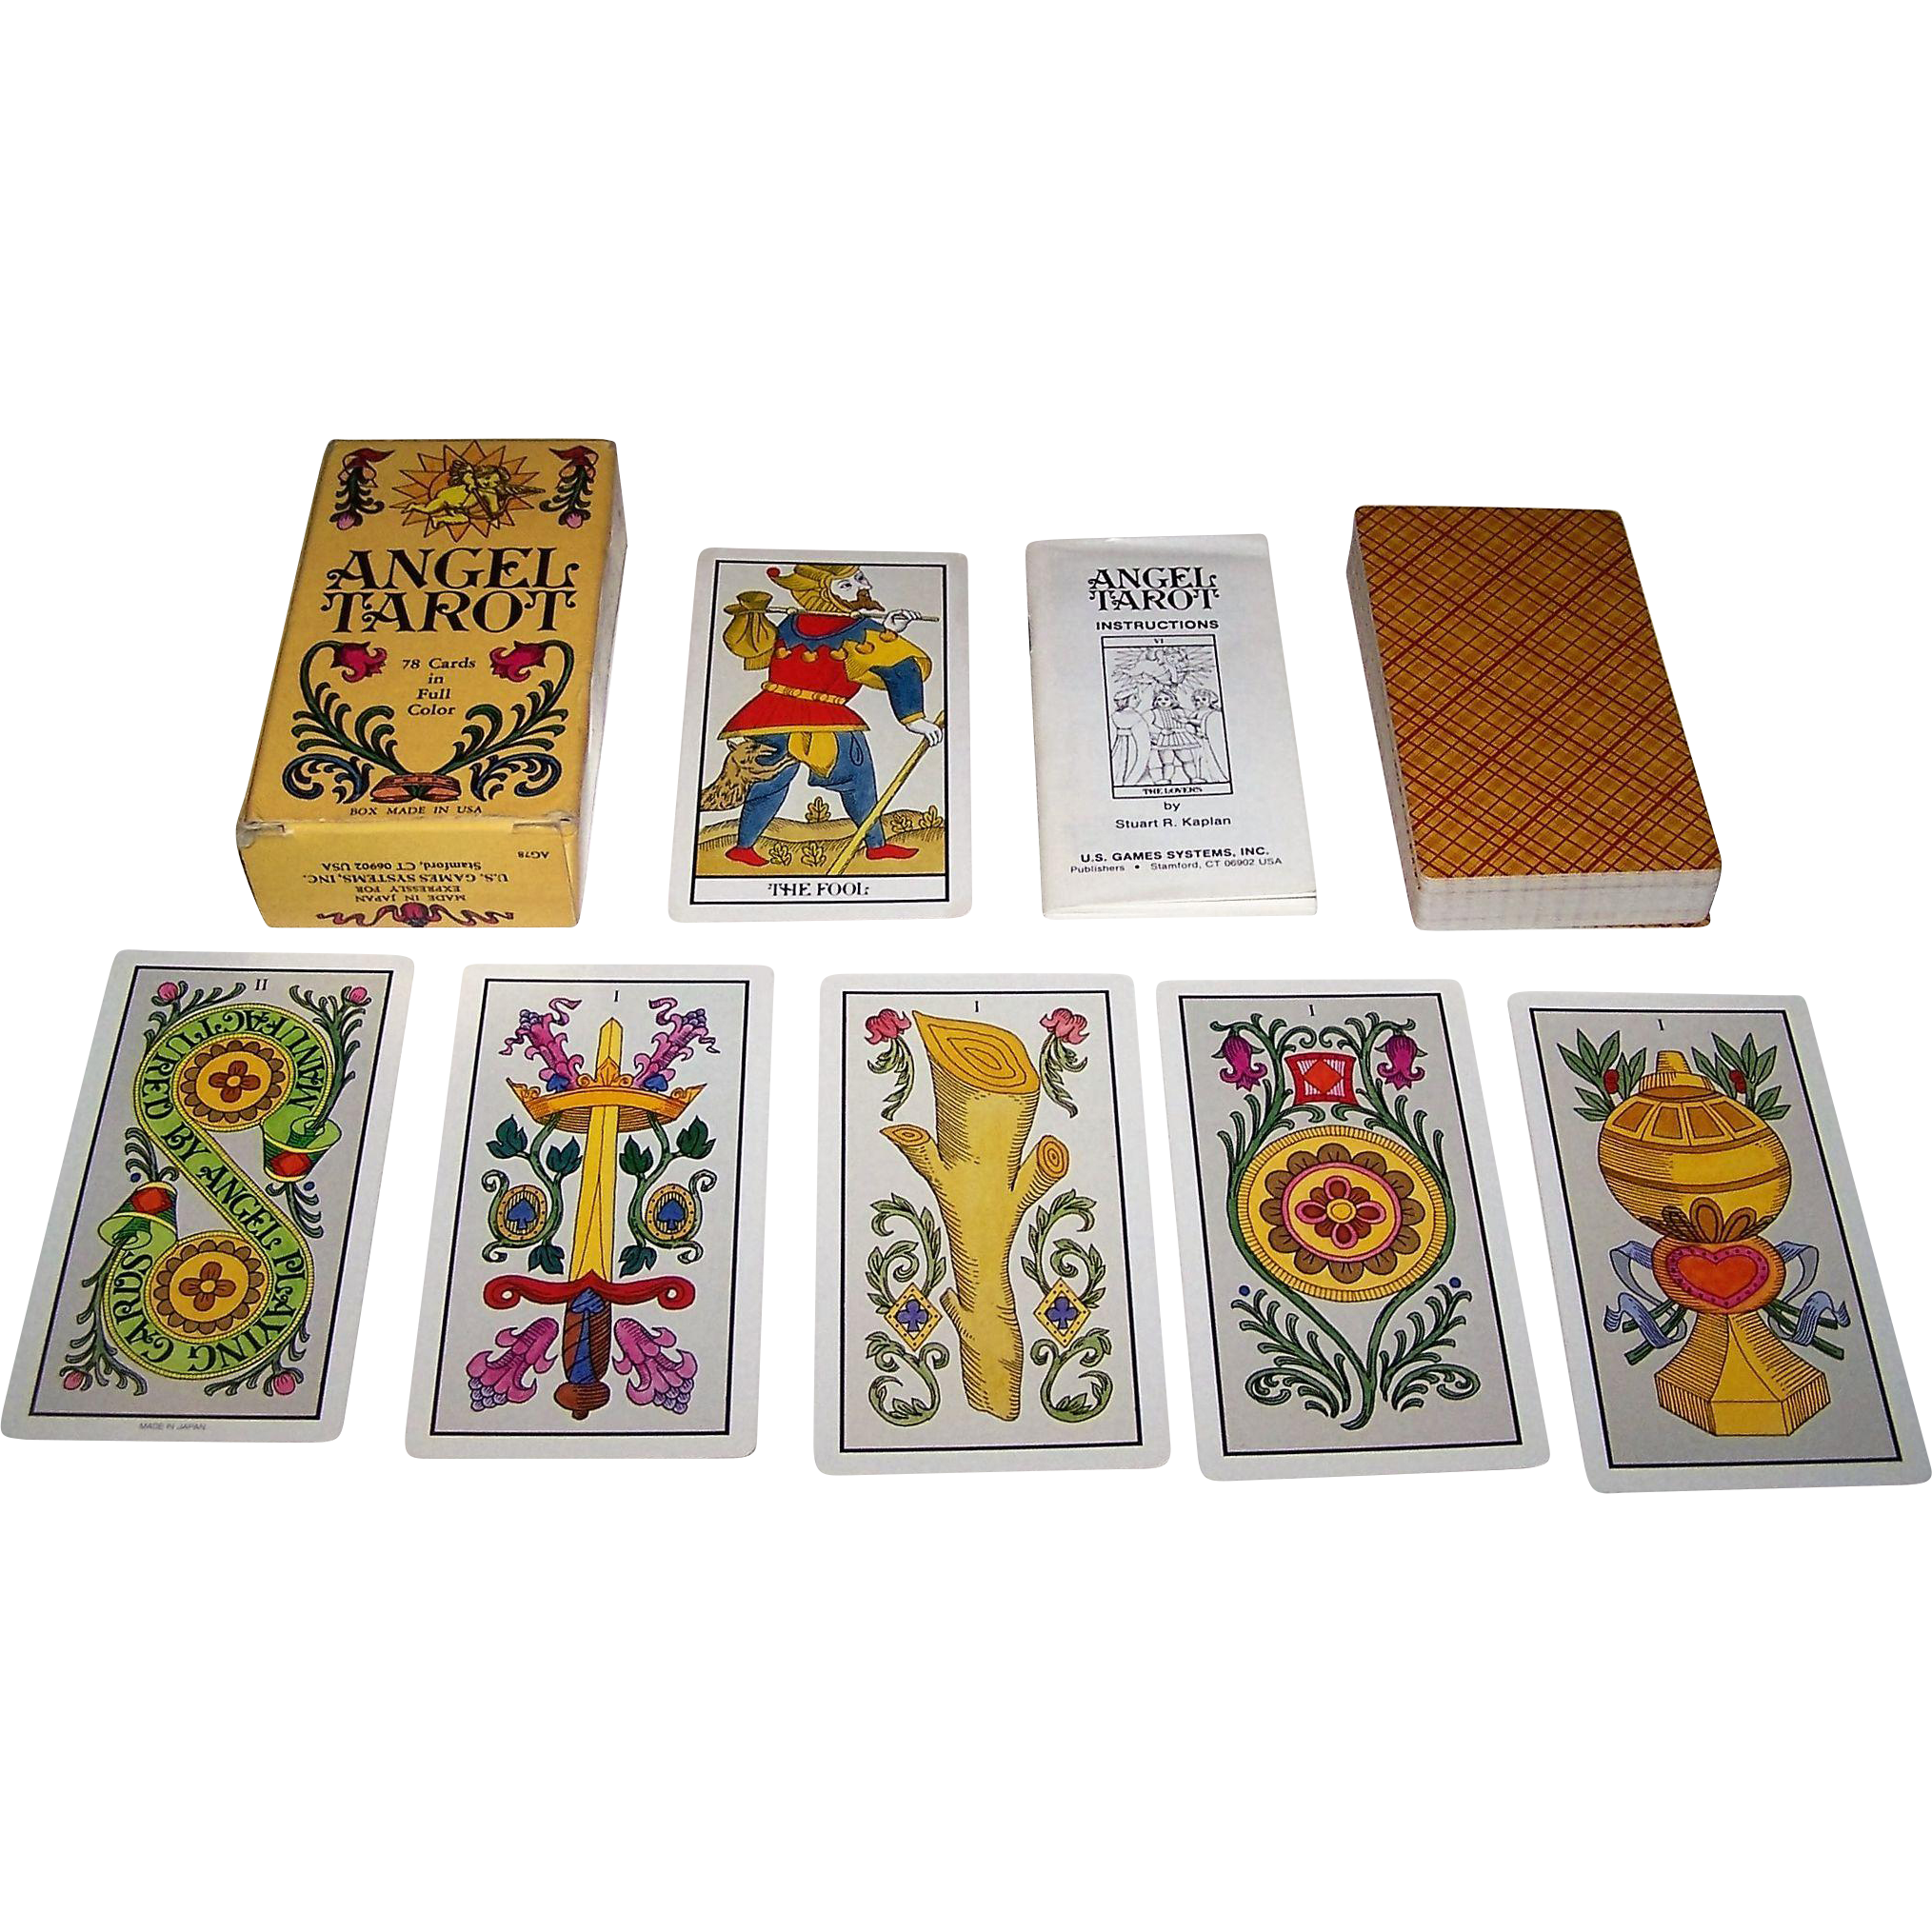 "Angel Playing Card Co. ""Angel Tarot"" Tarot Cards, U.S. Games Systems Publisher, c.1990s"